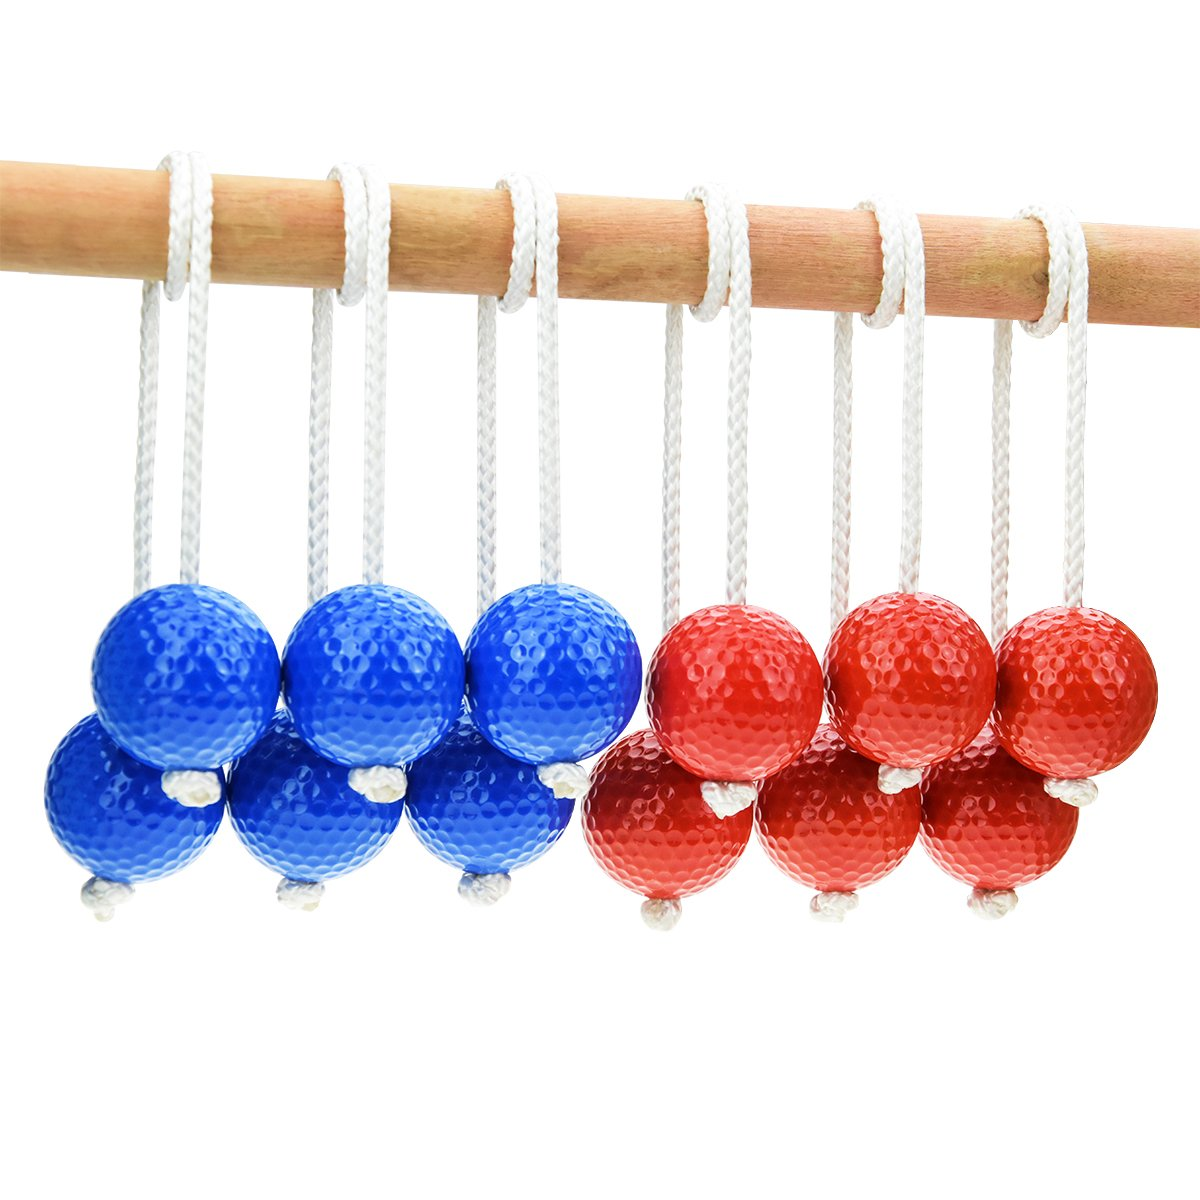 HONESTY Ladder Toss Ball Replacement Balls Ladder Golf Balls Made From Real Golf Balls 6 Pack